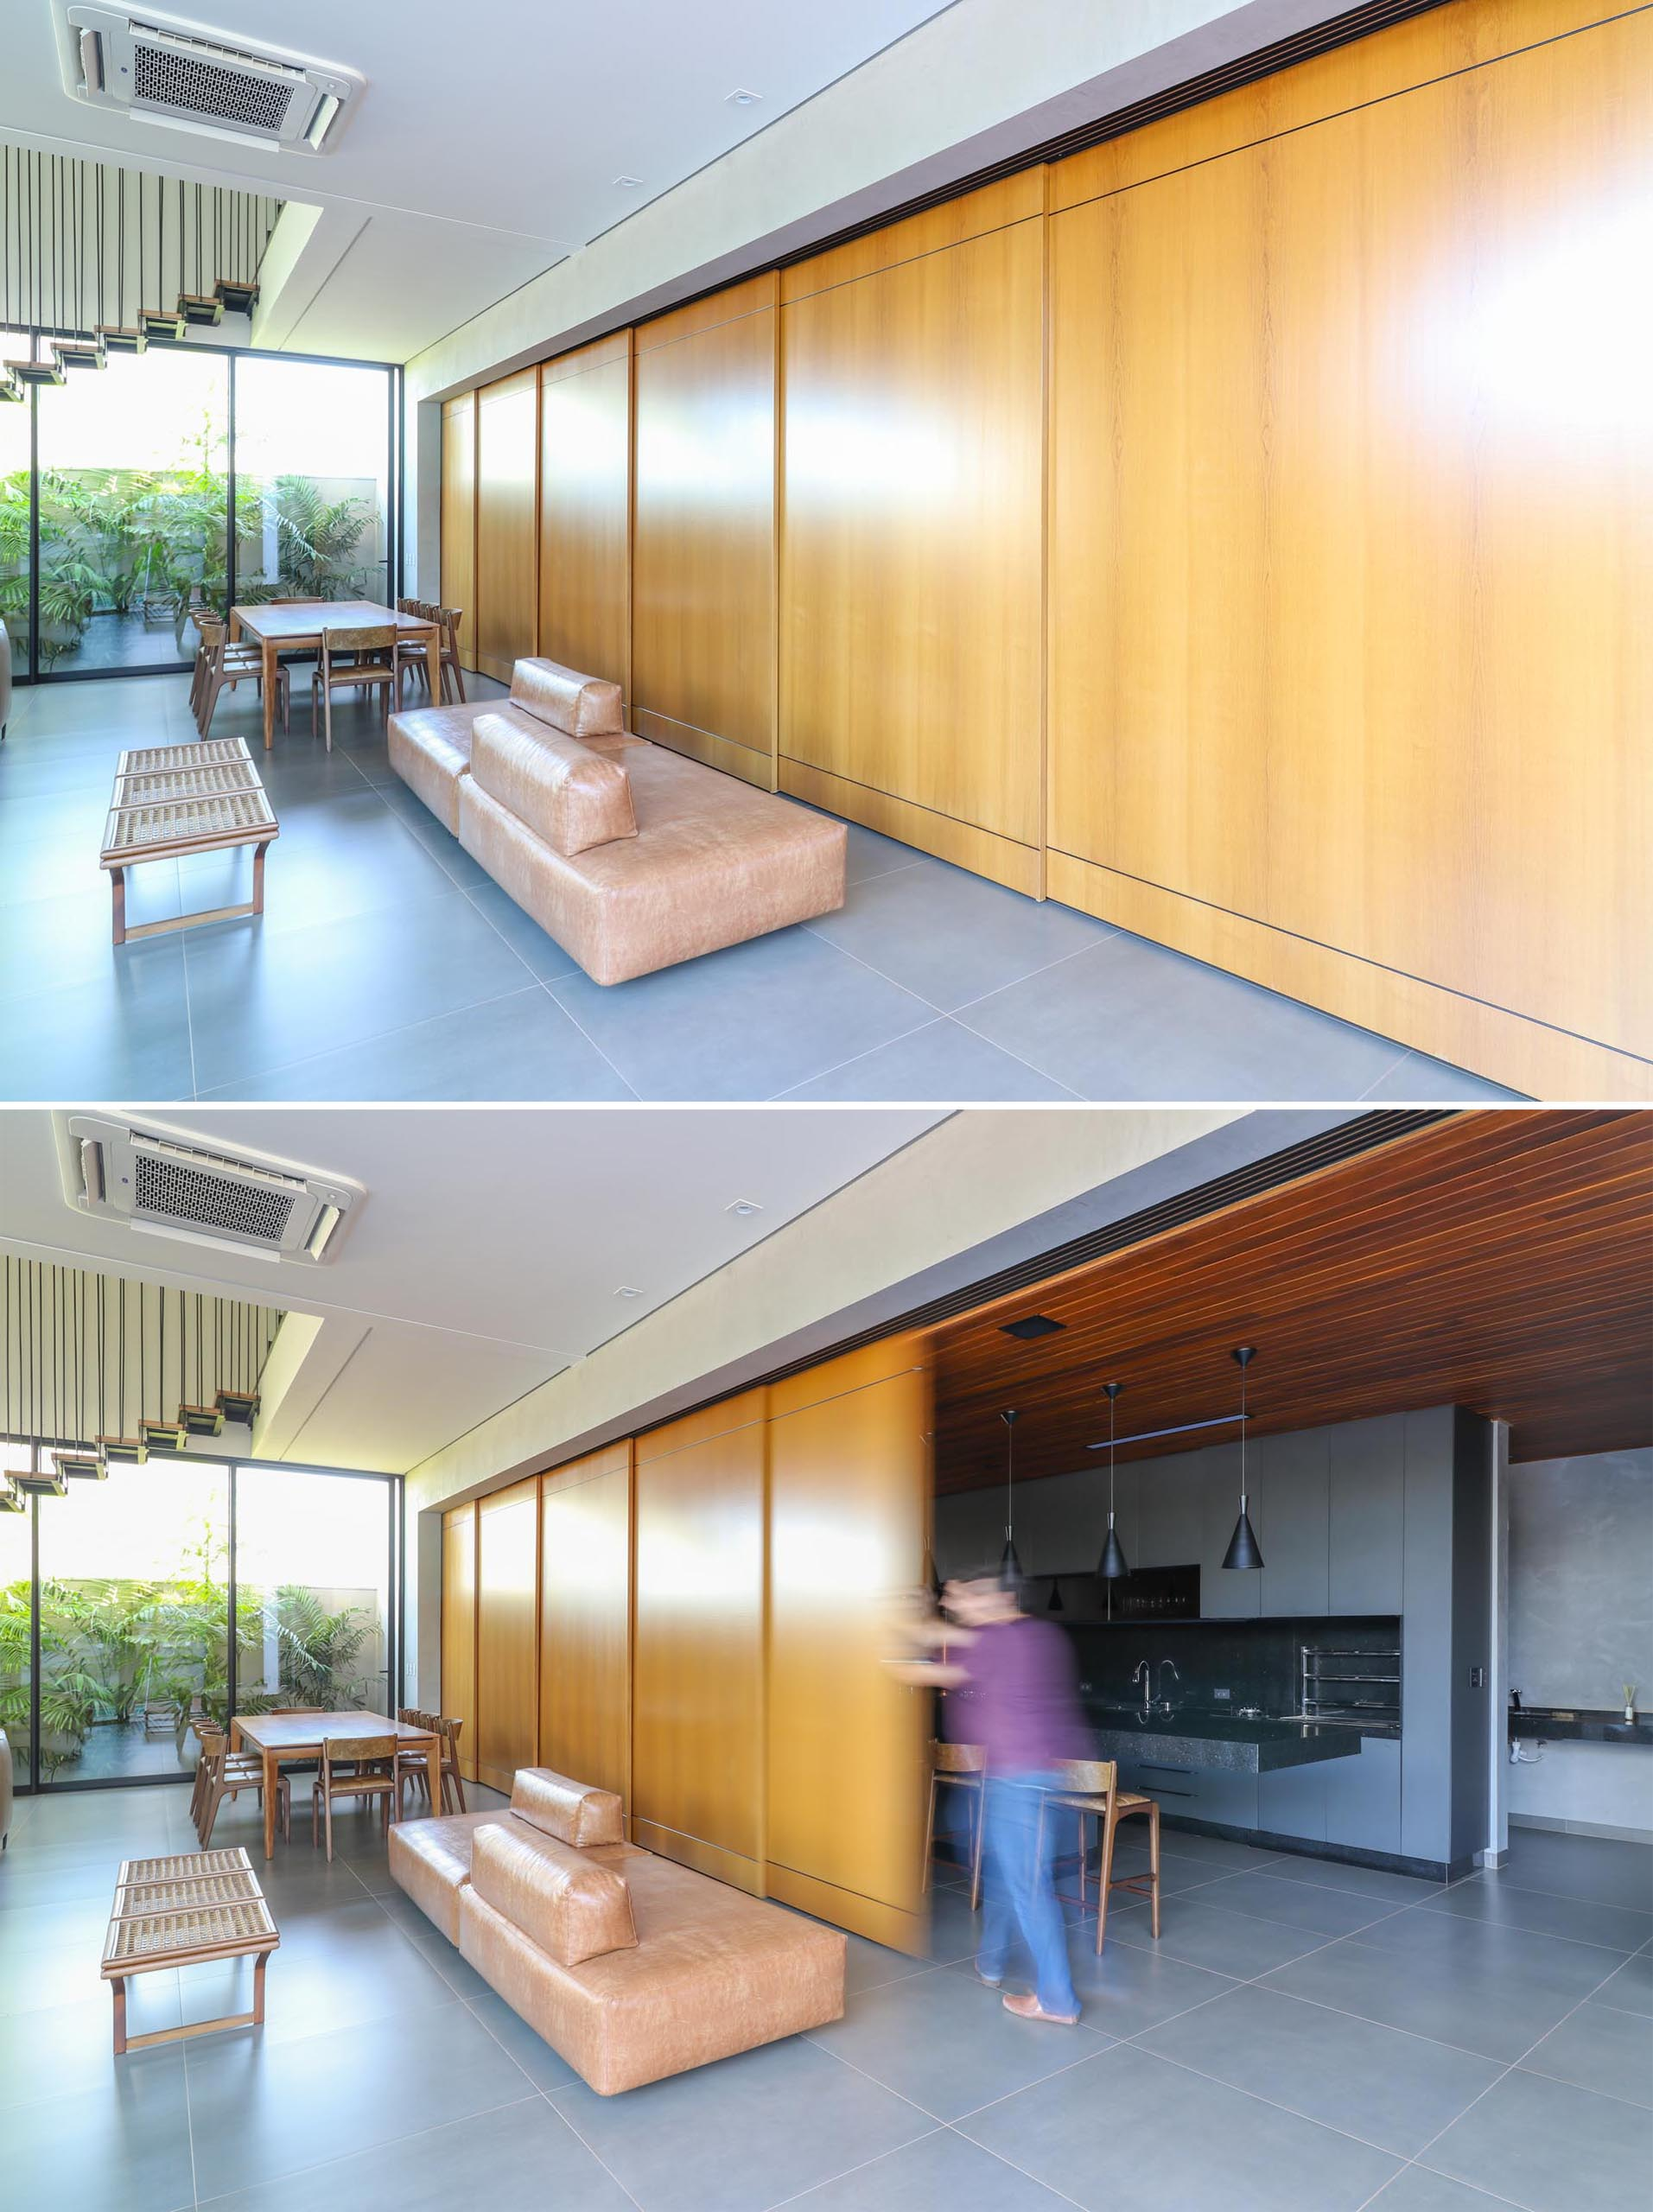 A modern home with a sliding wood wall that can hide the kitchen from the open plan dining area and living room.